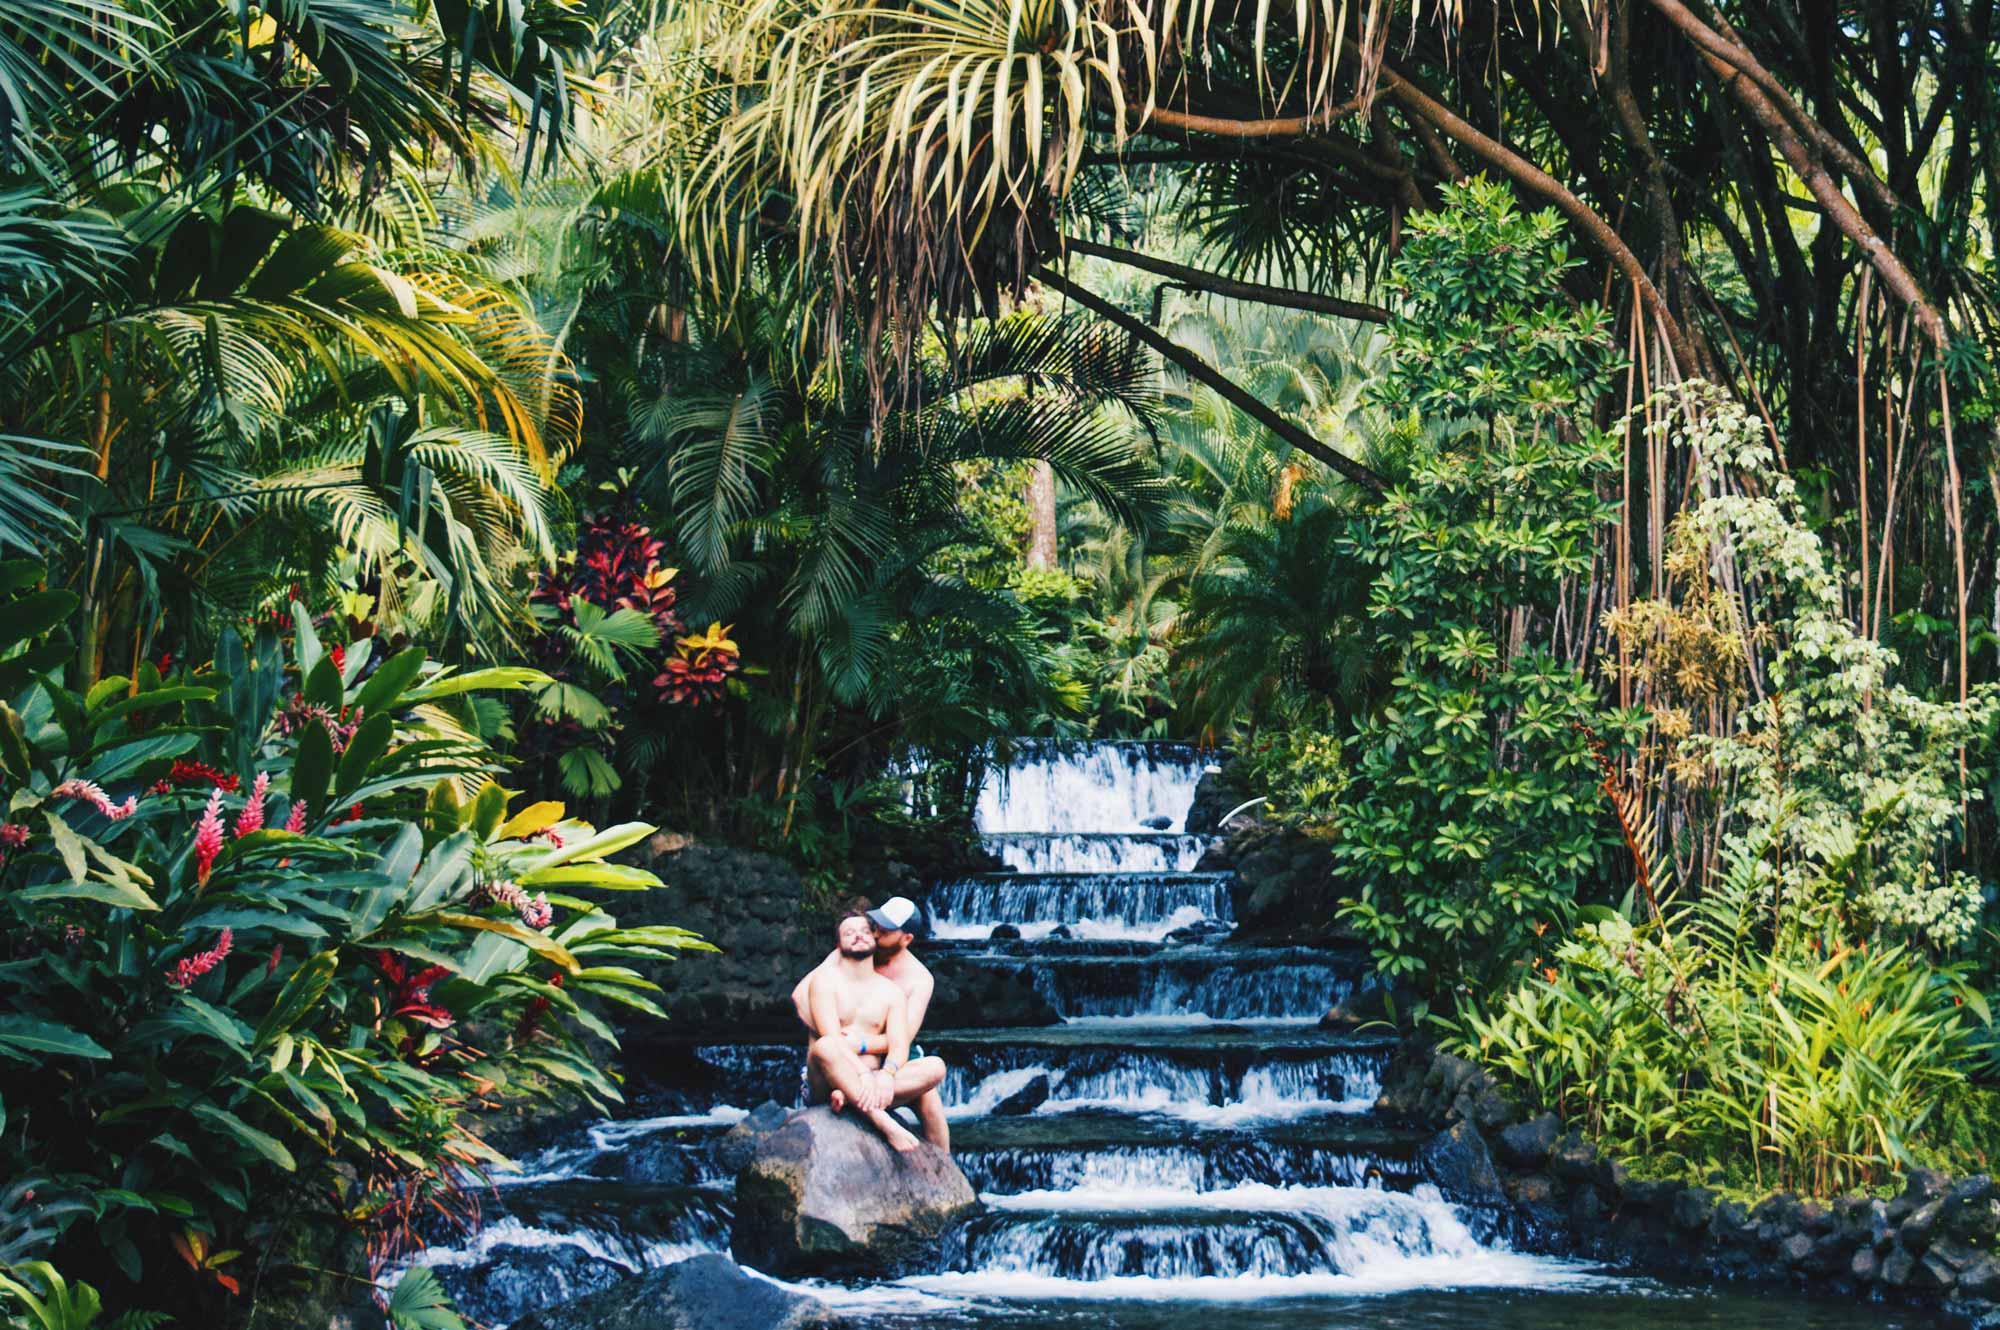 Gay Travel Journal Costa Rica Truly magical nature at gay-friendly Tabacon Hot Springs Resort & Spa | Gay-friendly Costa Rica © Coupleofmen.com